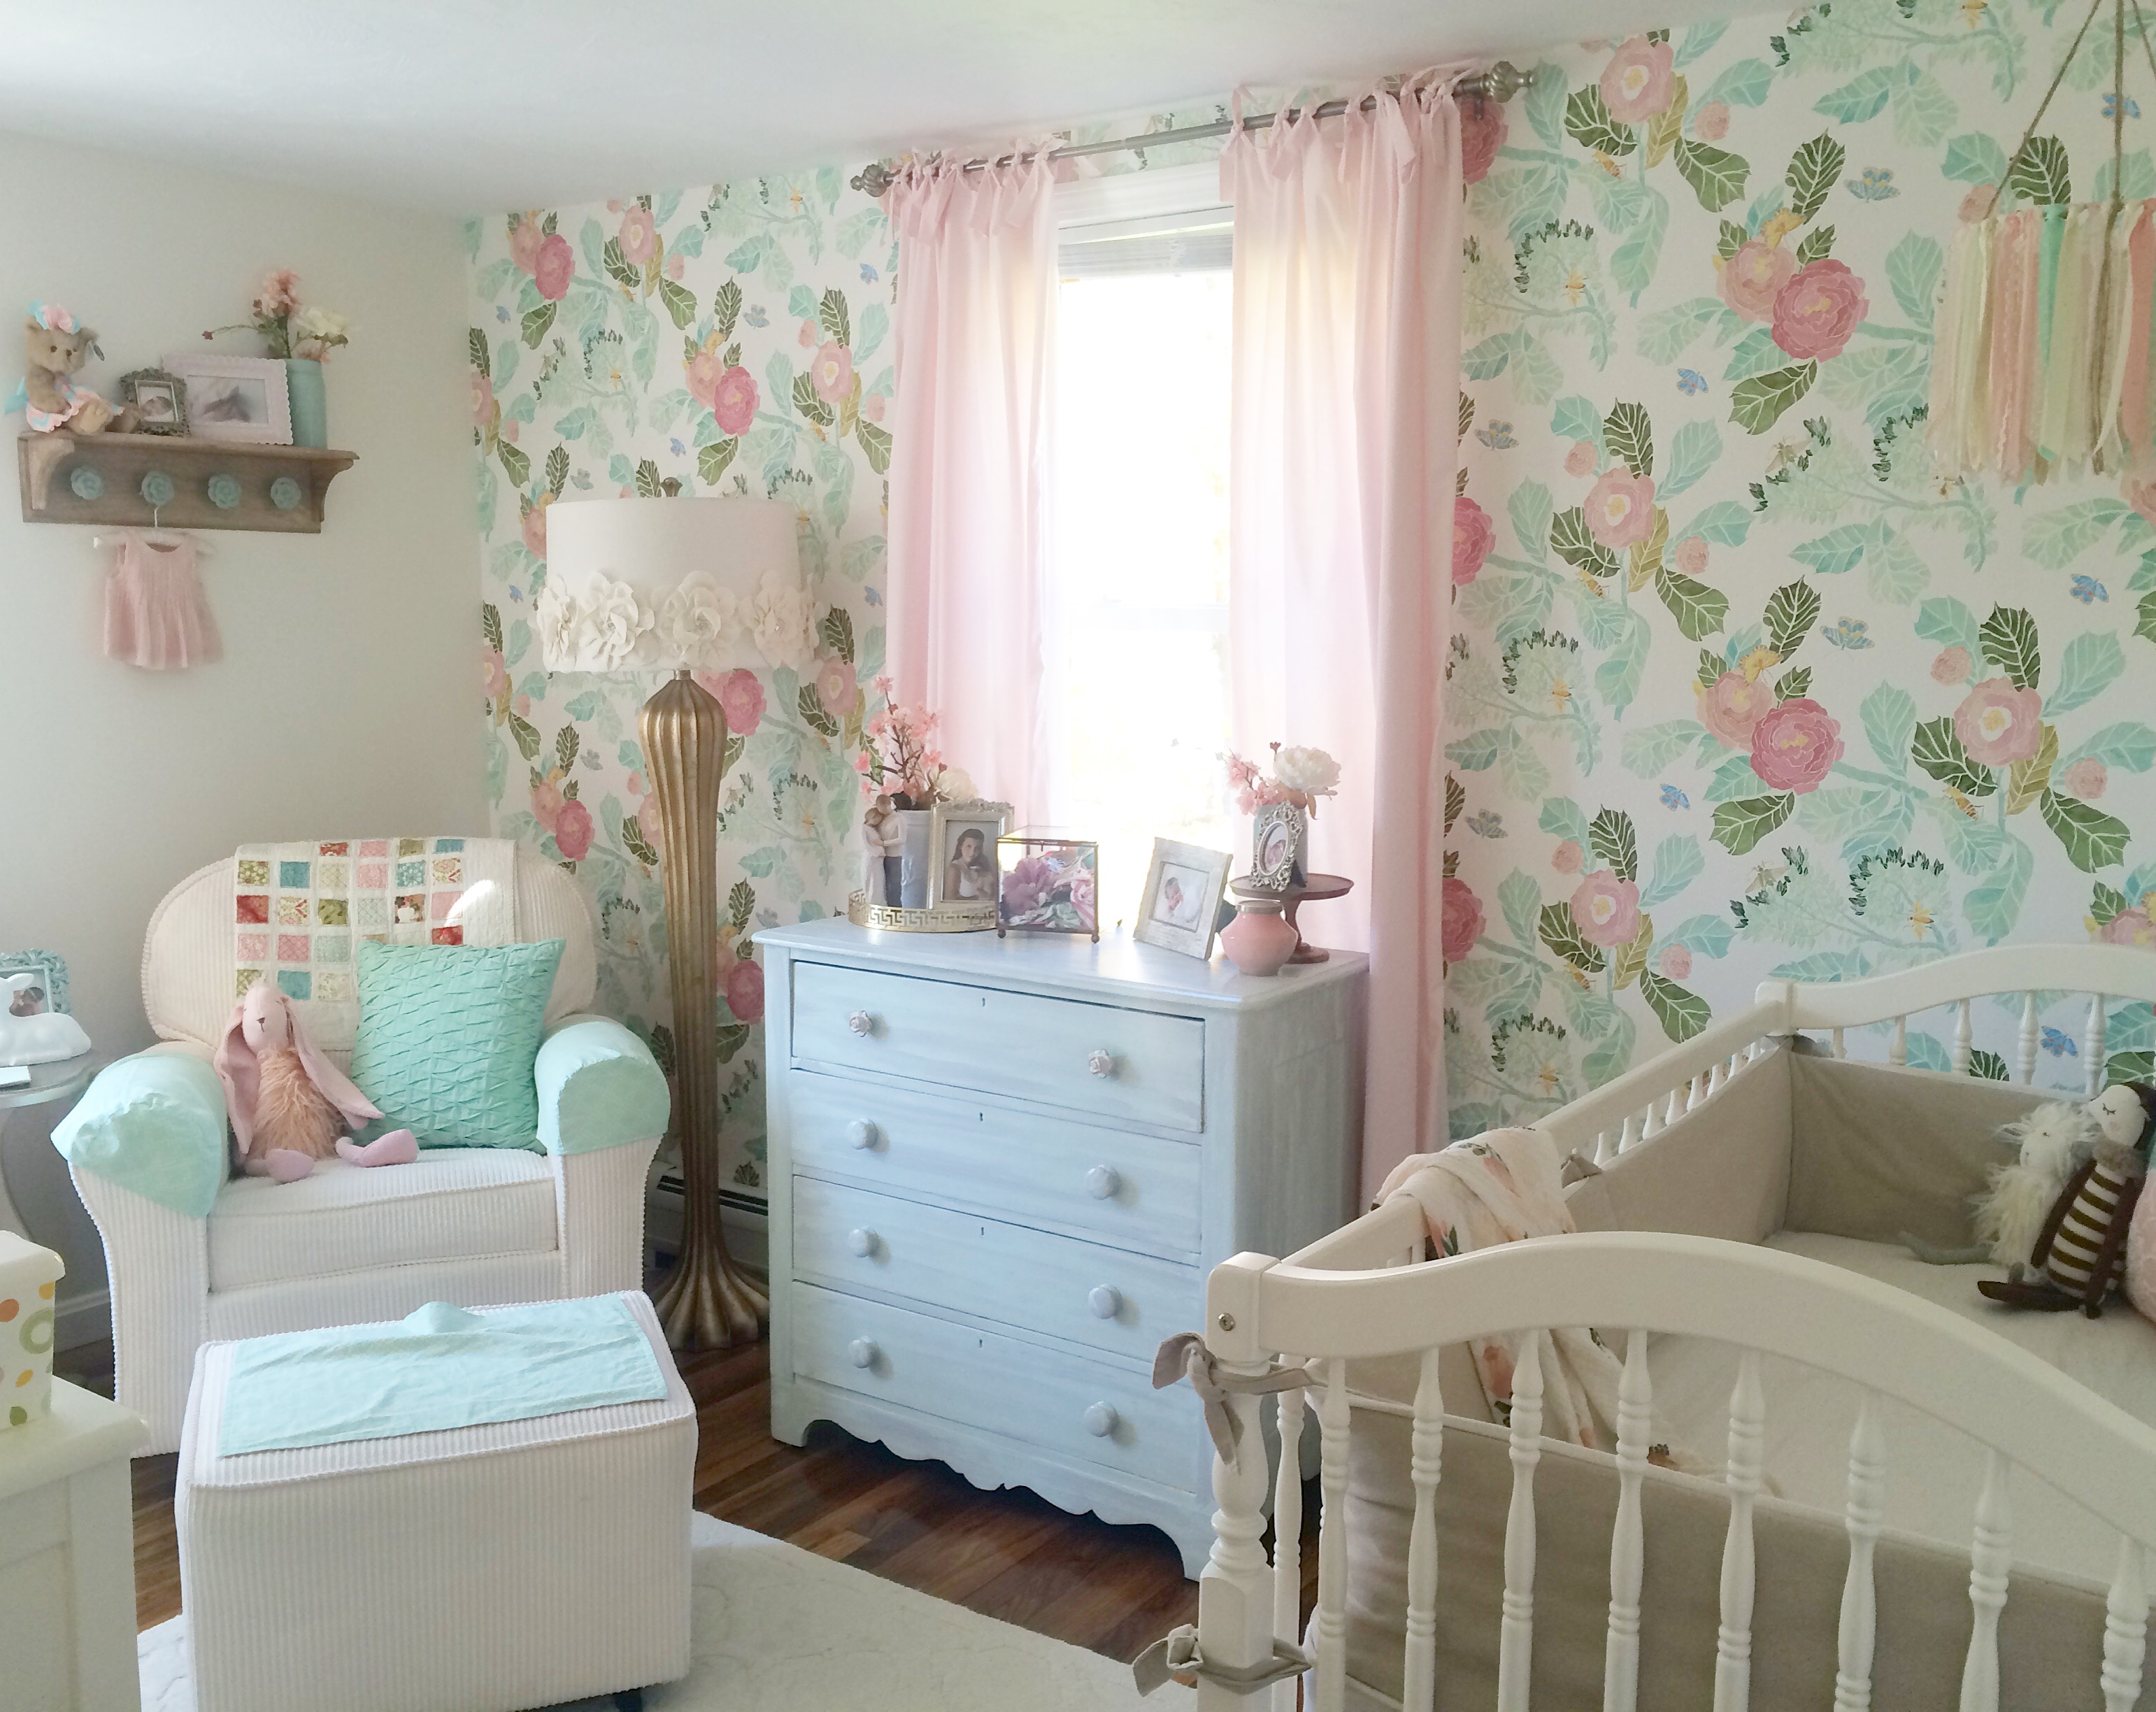 rory lou 39 s shabby chic mint pink and gold nursery project nursery. Black Bedroom Furniture Sets. Home Design Ideas